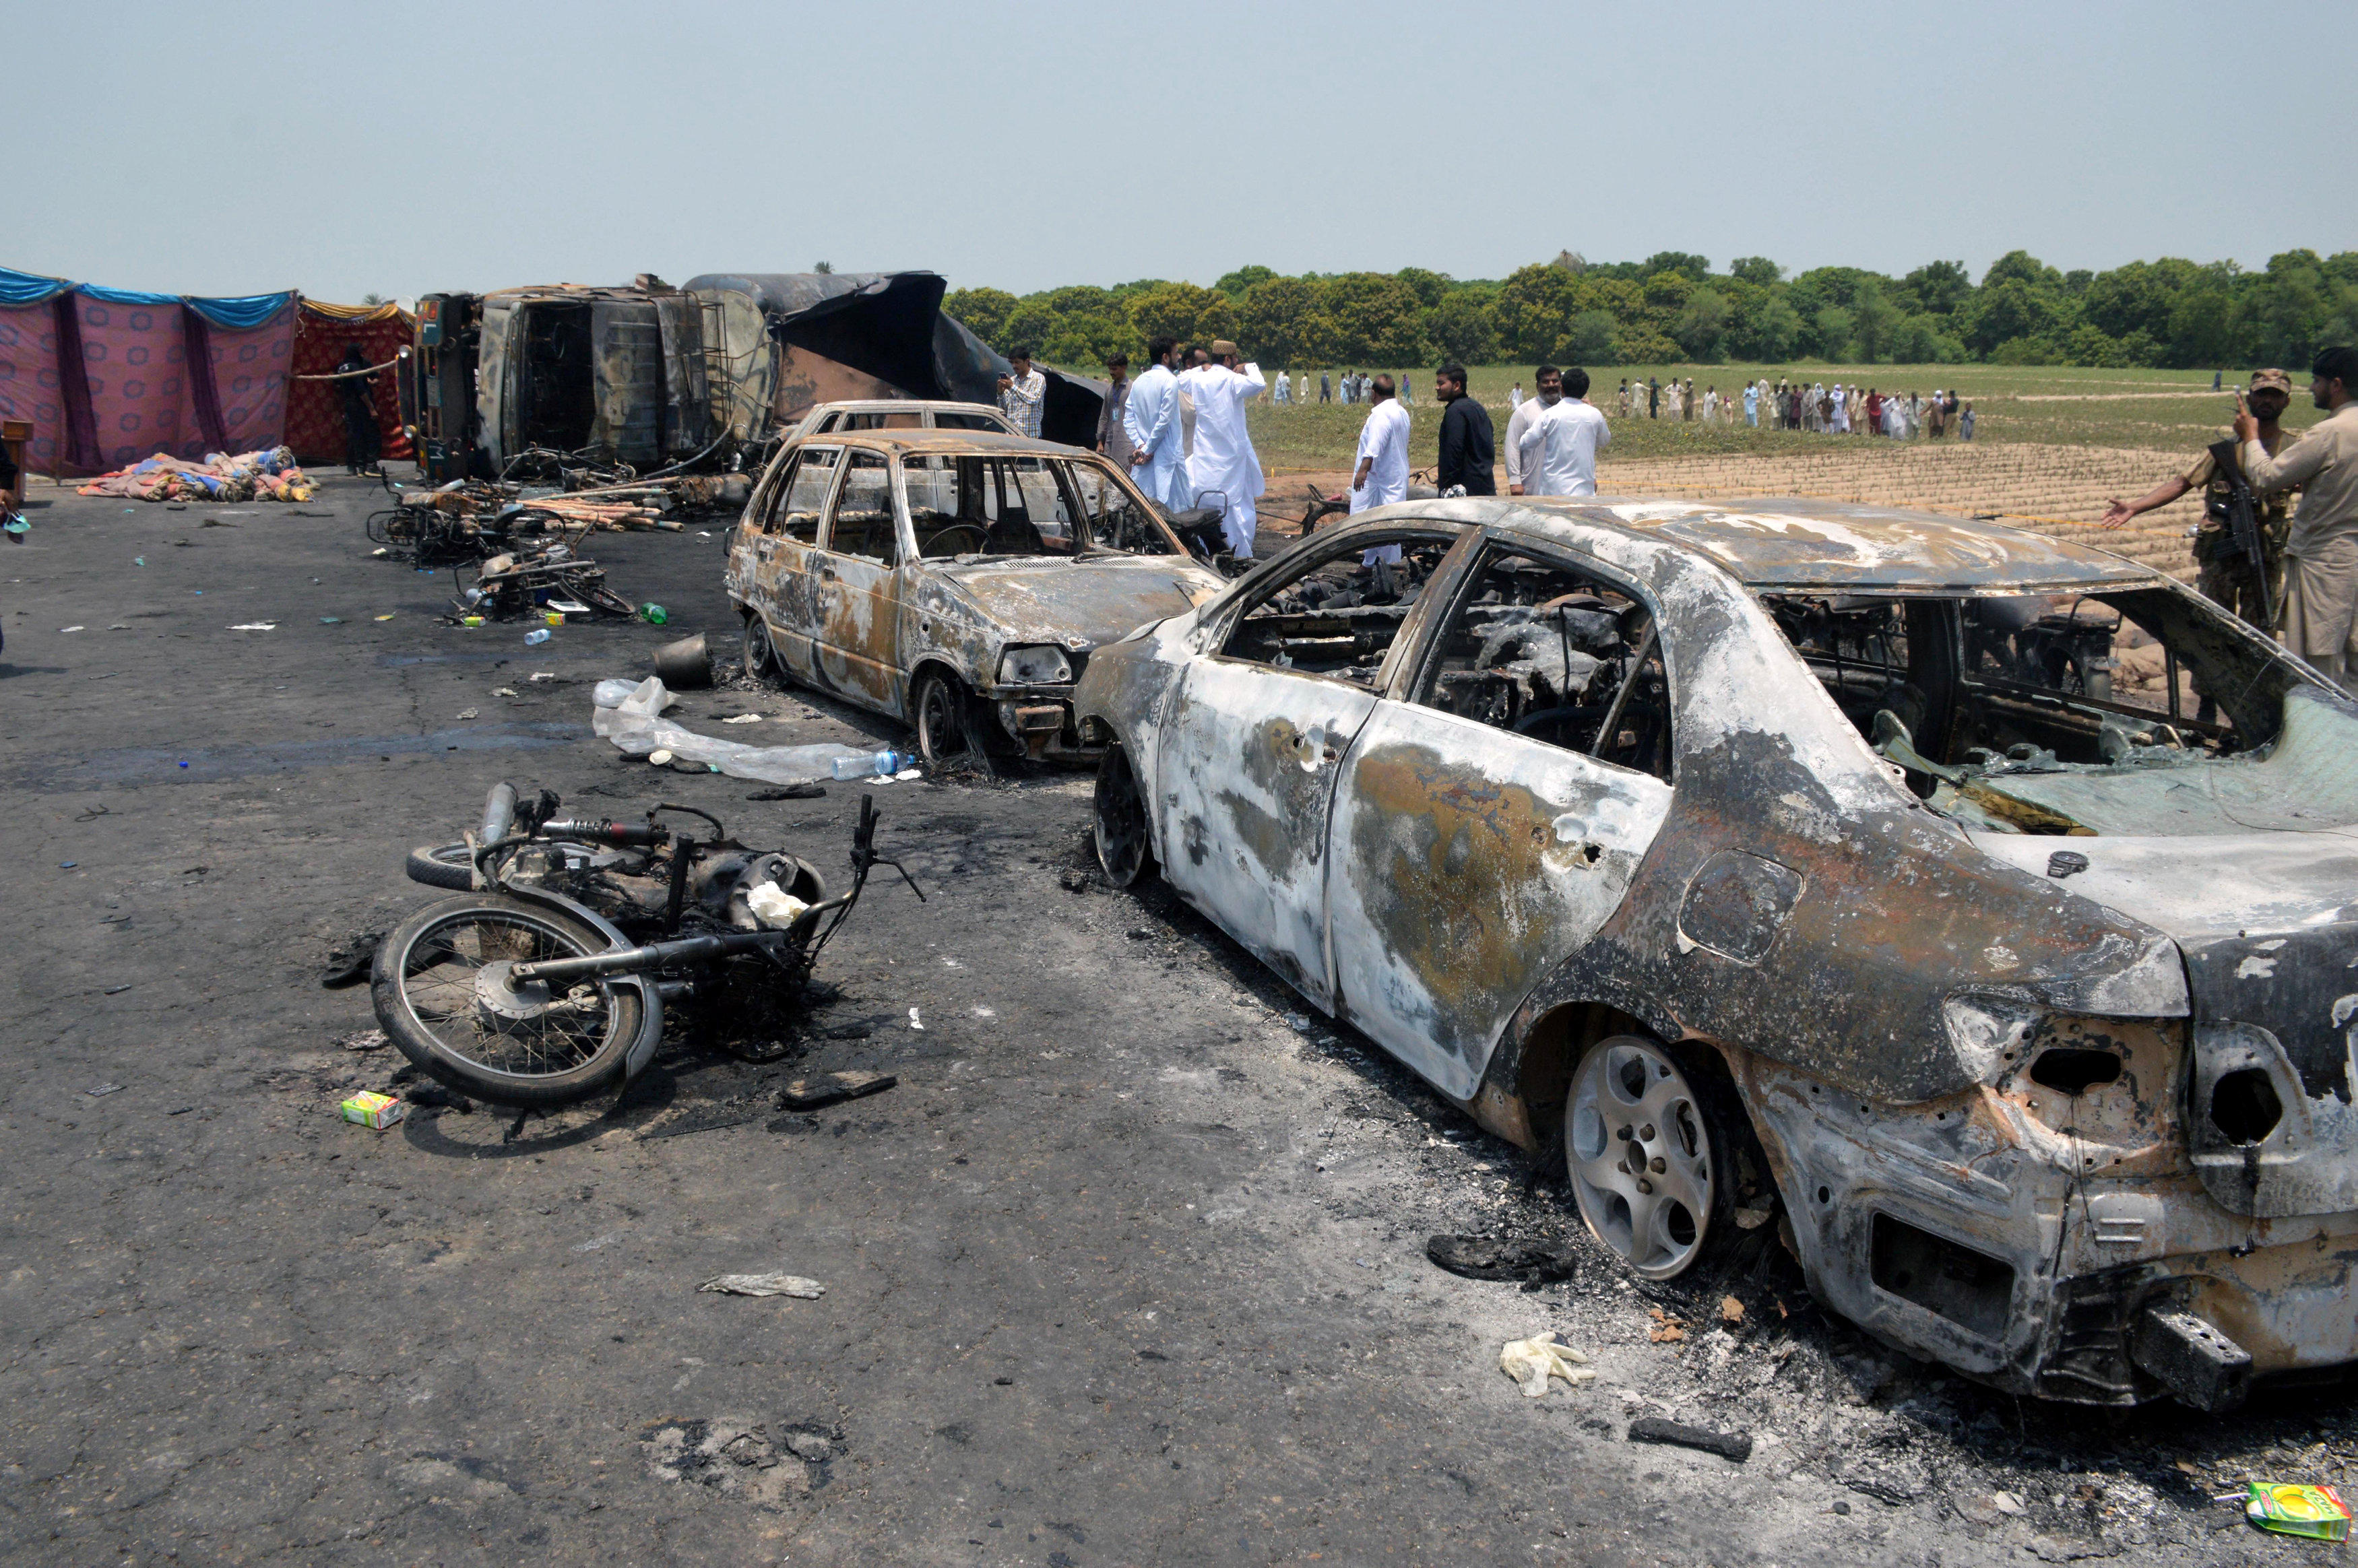 Oil tanker explodes in Pakistan, killing scores who rushed to accident scene – CBS News